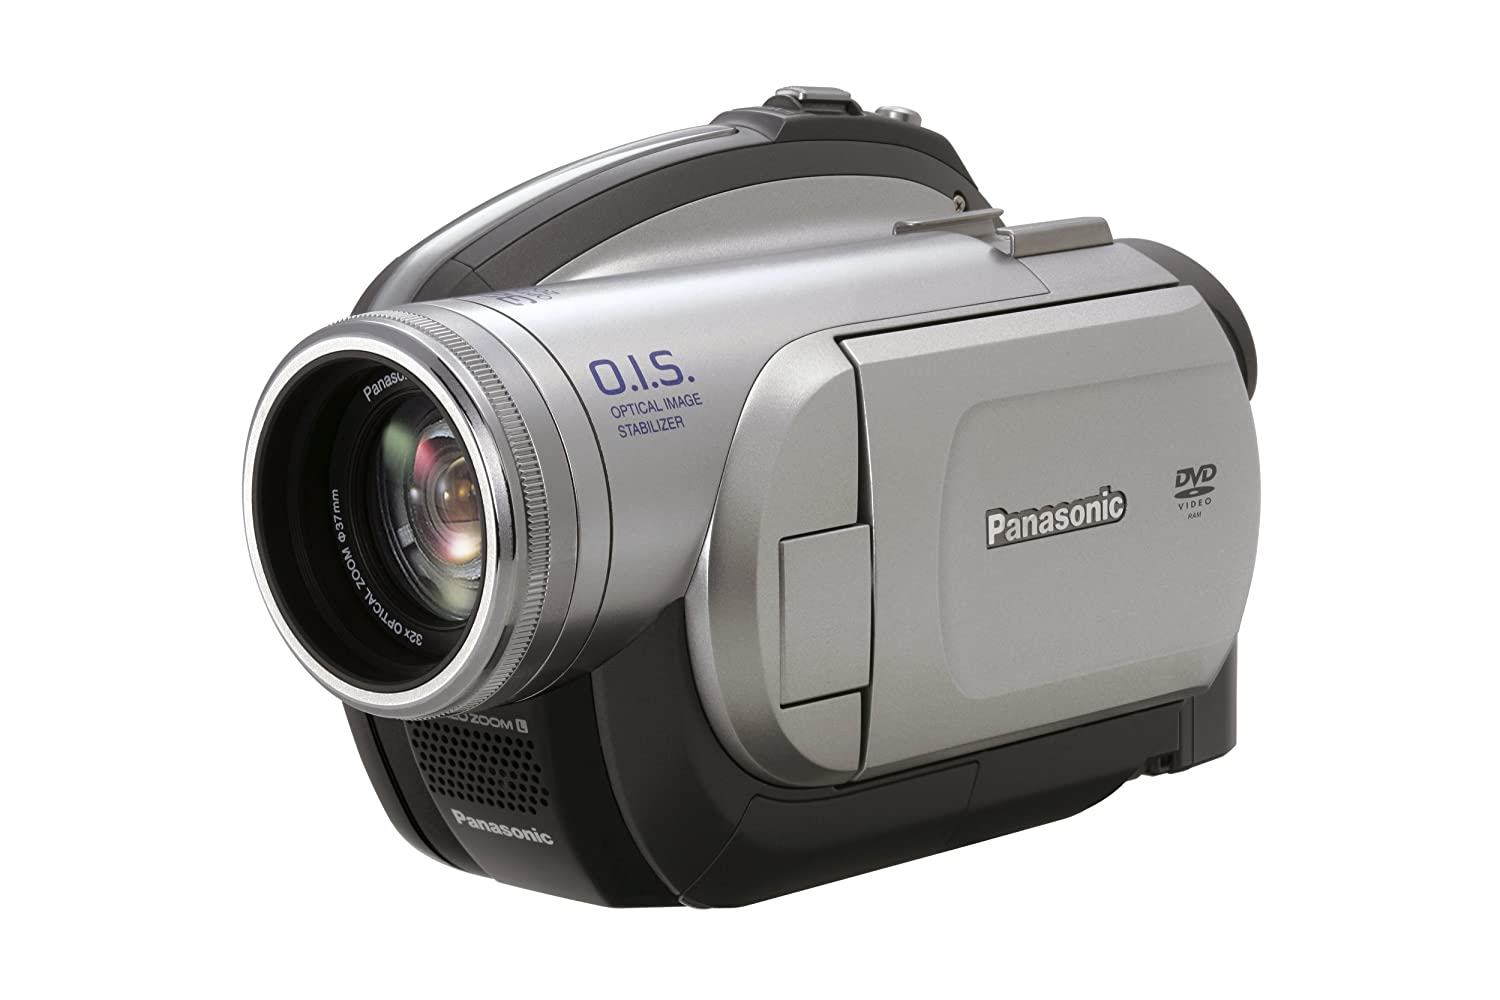 Amazon.com : Panasonic VDR-D210 DVD Camcorder with 32x Optical Image  Stabilized Zoom (Discontinued by Manufacturer) : Camera & Photo